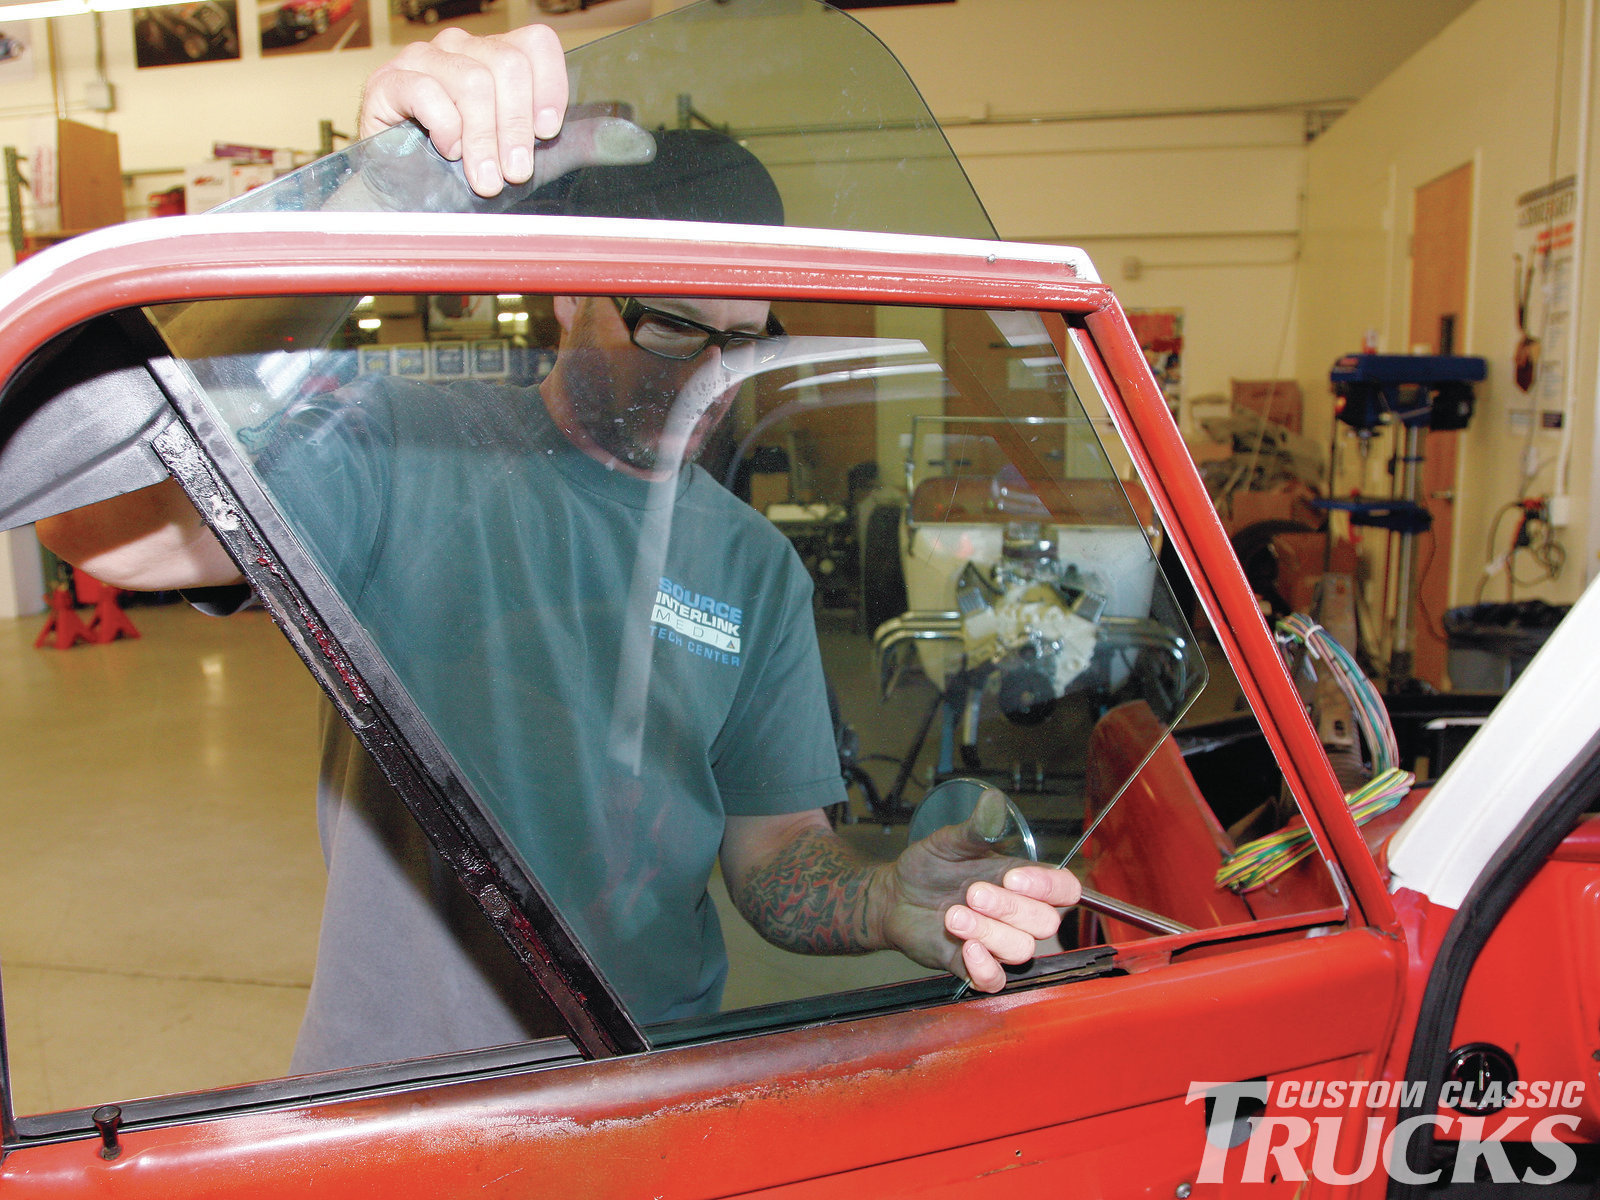 12. Once the vent window assembly is out of the way, the door glass can be removed to make swapping the regulators much easier.